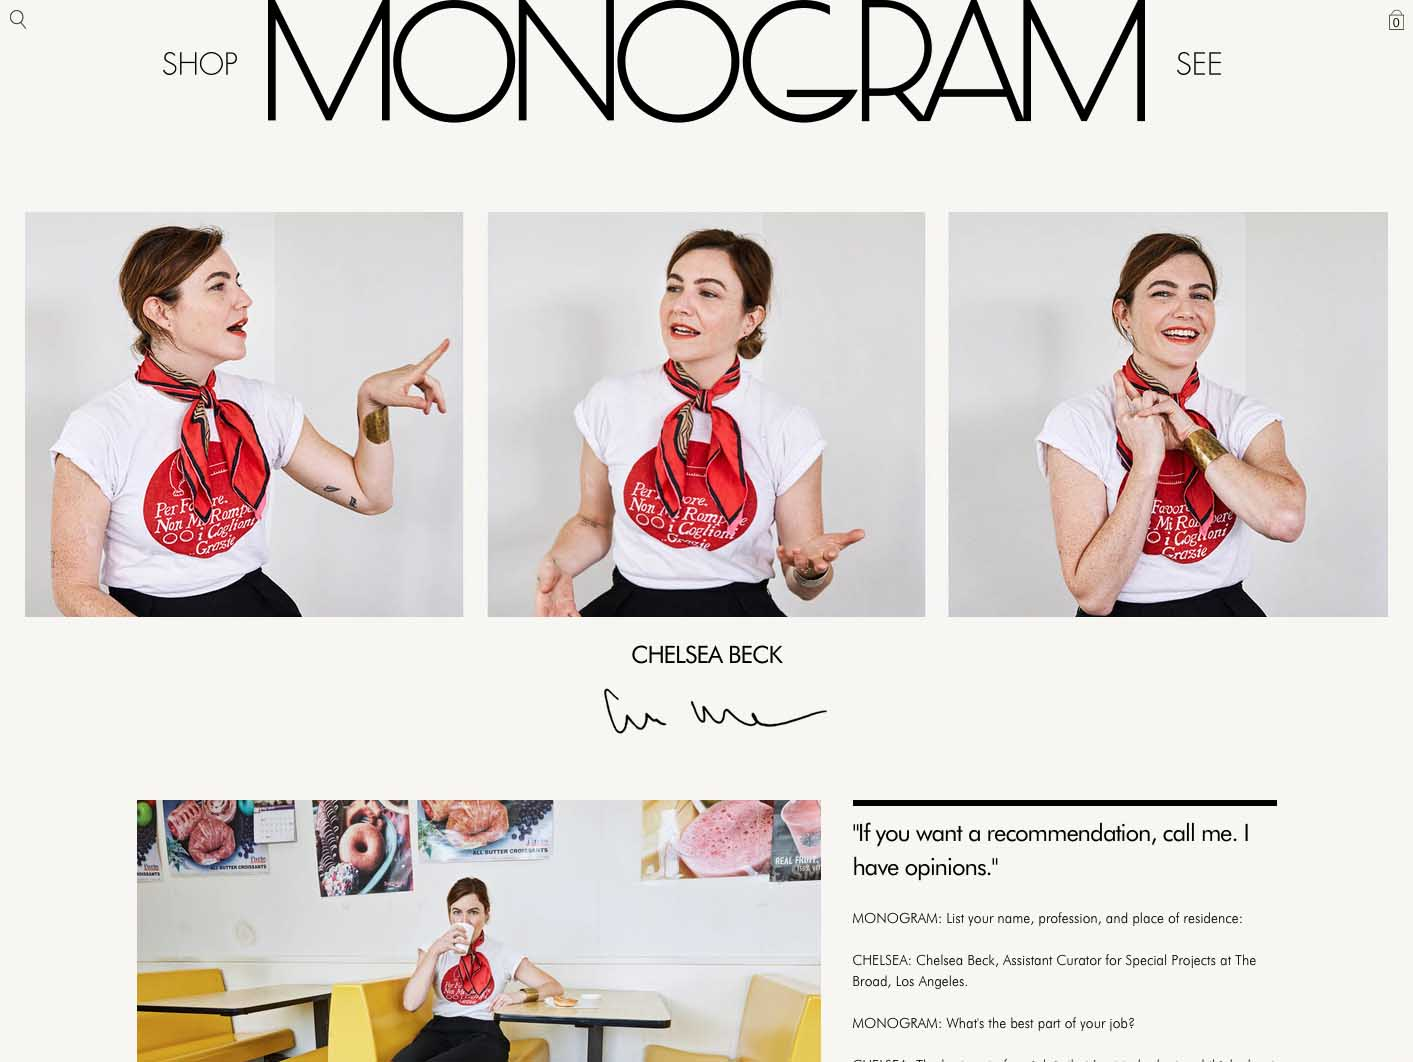 Monogram blog design by Scissor.